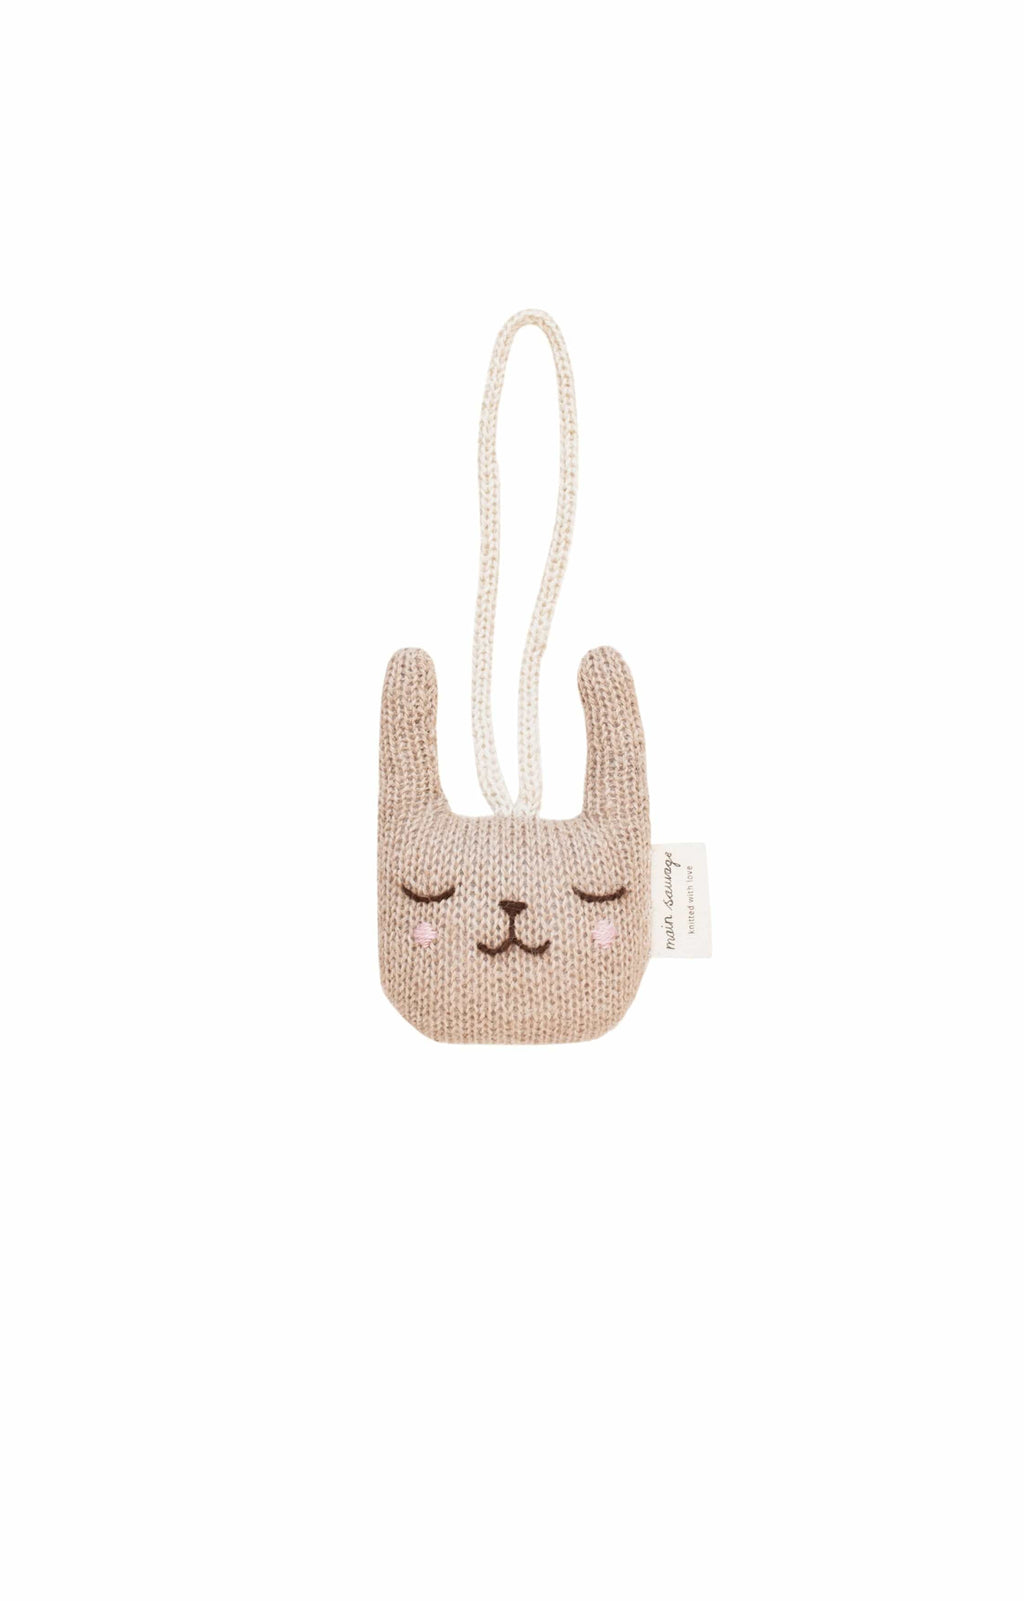 Main Sauvage rabbit hanging rattle (Pre-Order Feb)